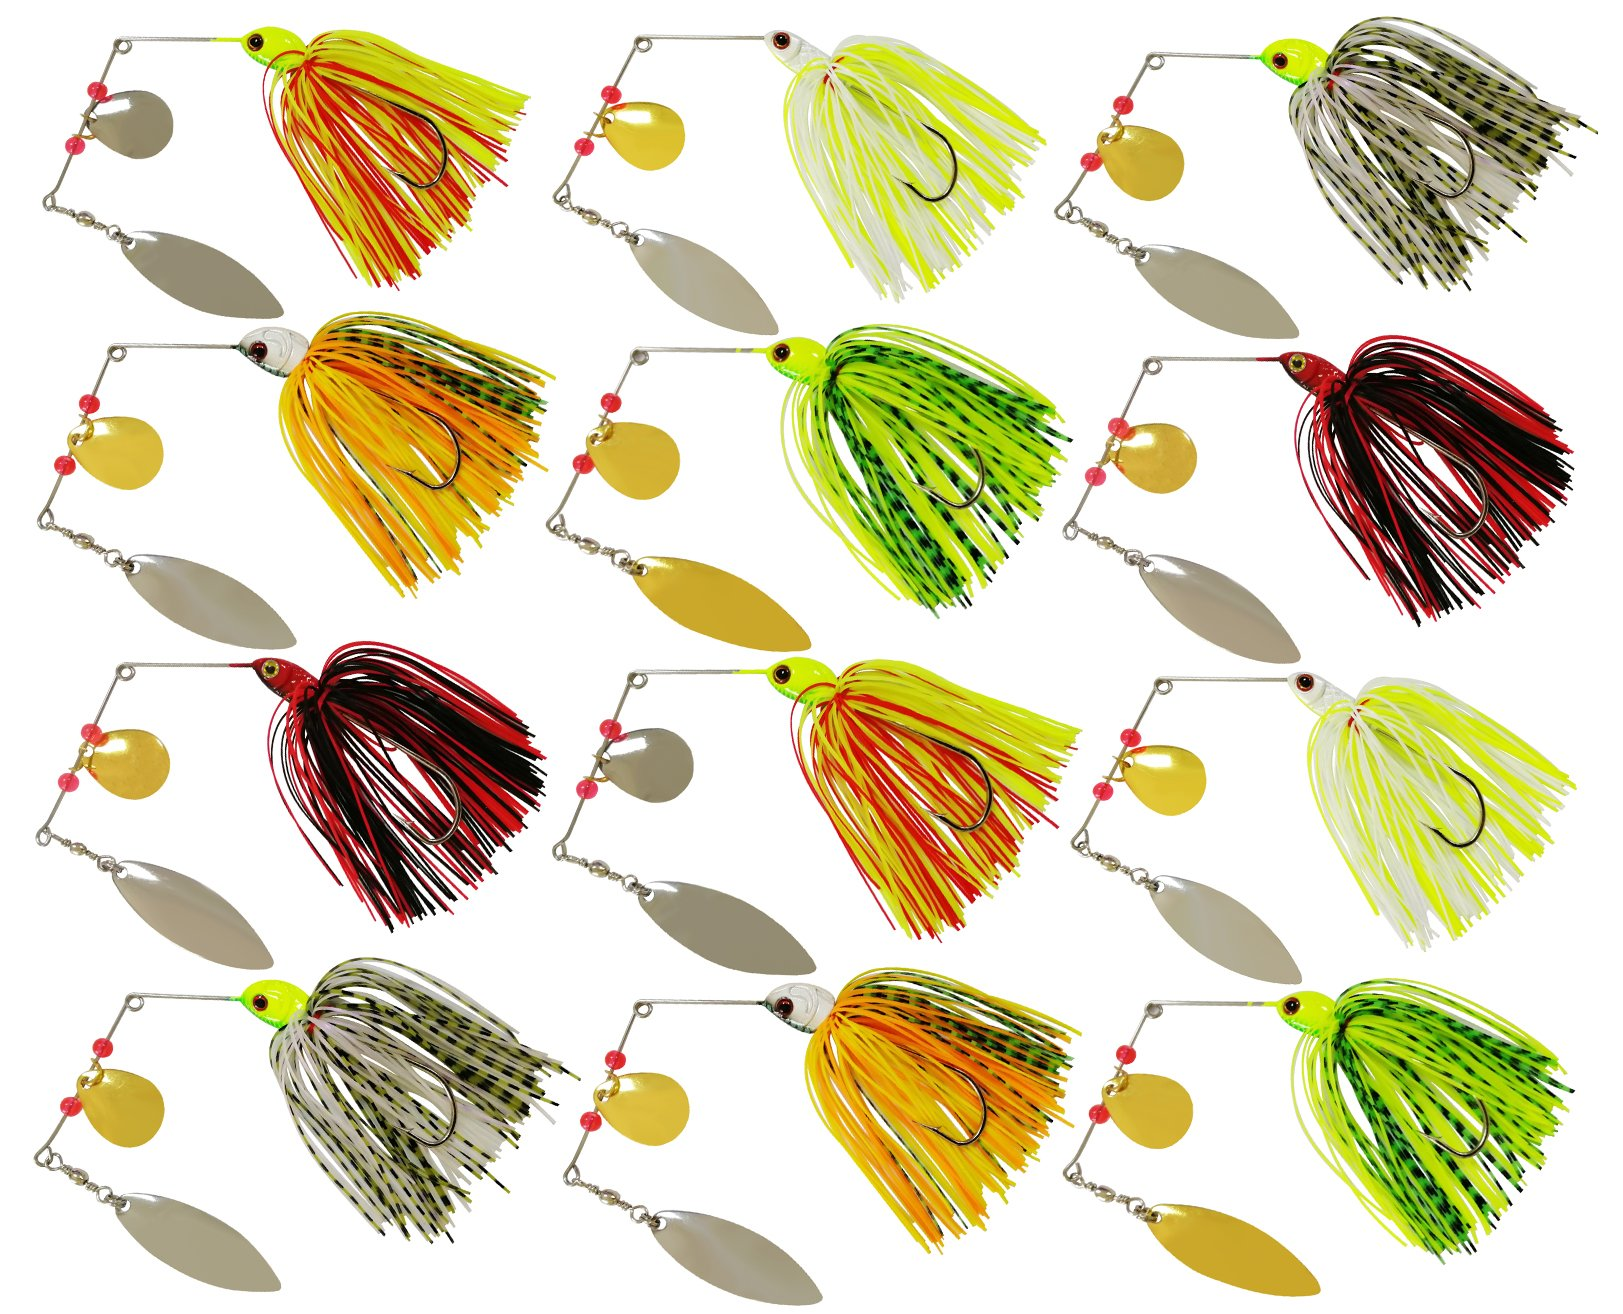 JSHANMEI Fishing Lures Spinnerbait, Hard Metal Spinner Bait Kit Jigs Lure for Bass Pike Trout Salmon Freshwater Saltwater Fishing 6pcs by JSHANMEI